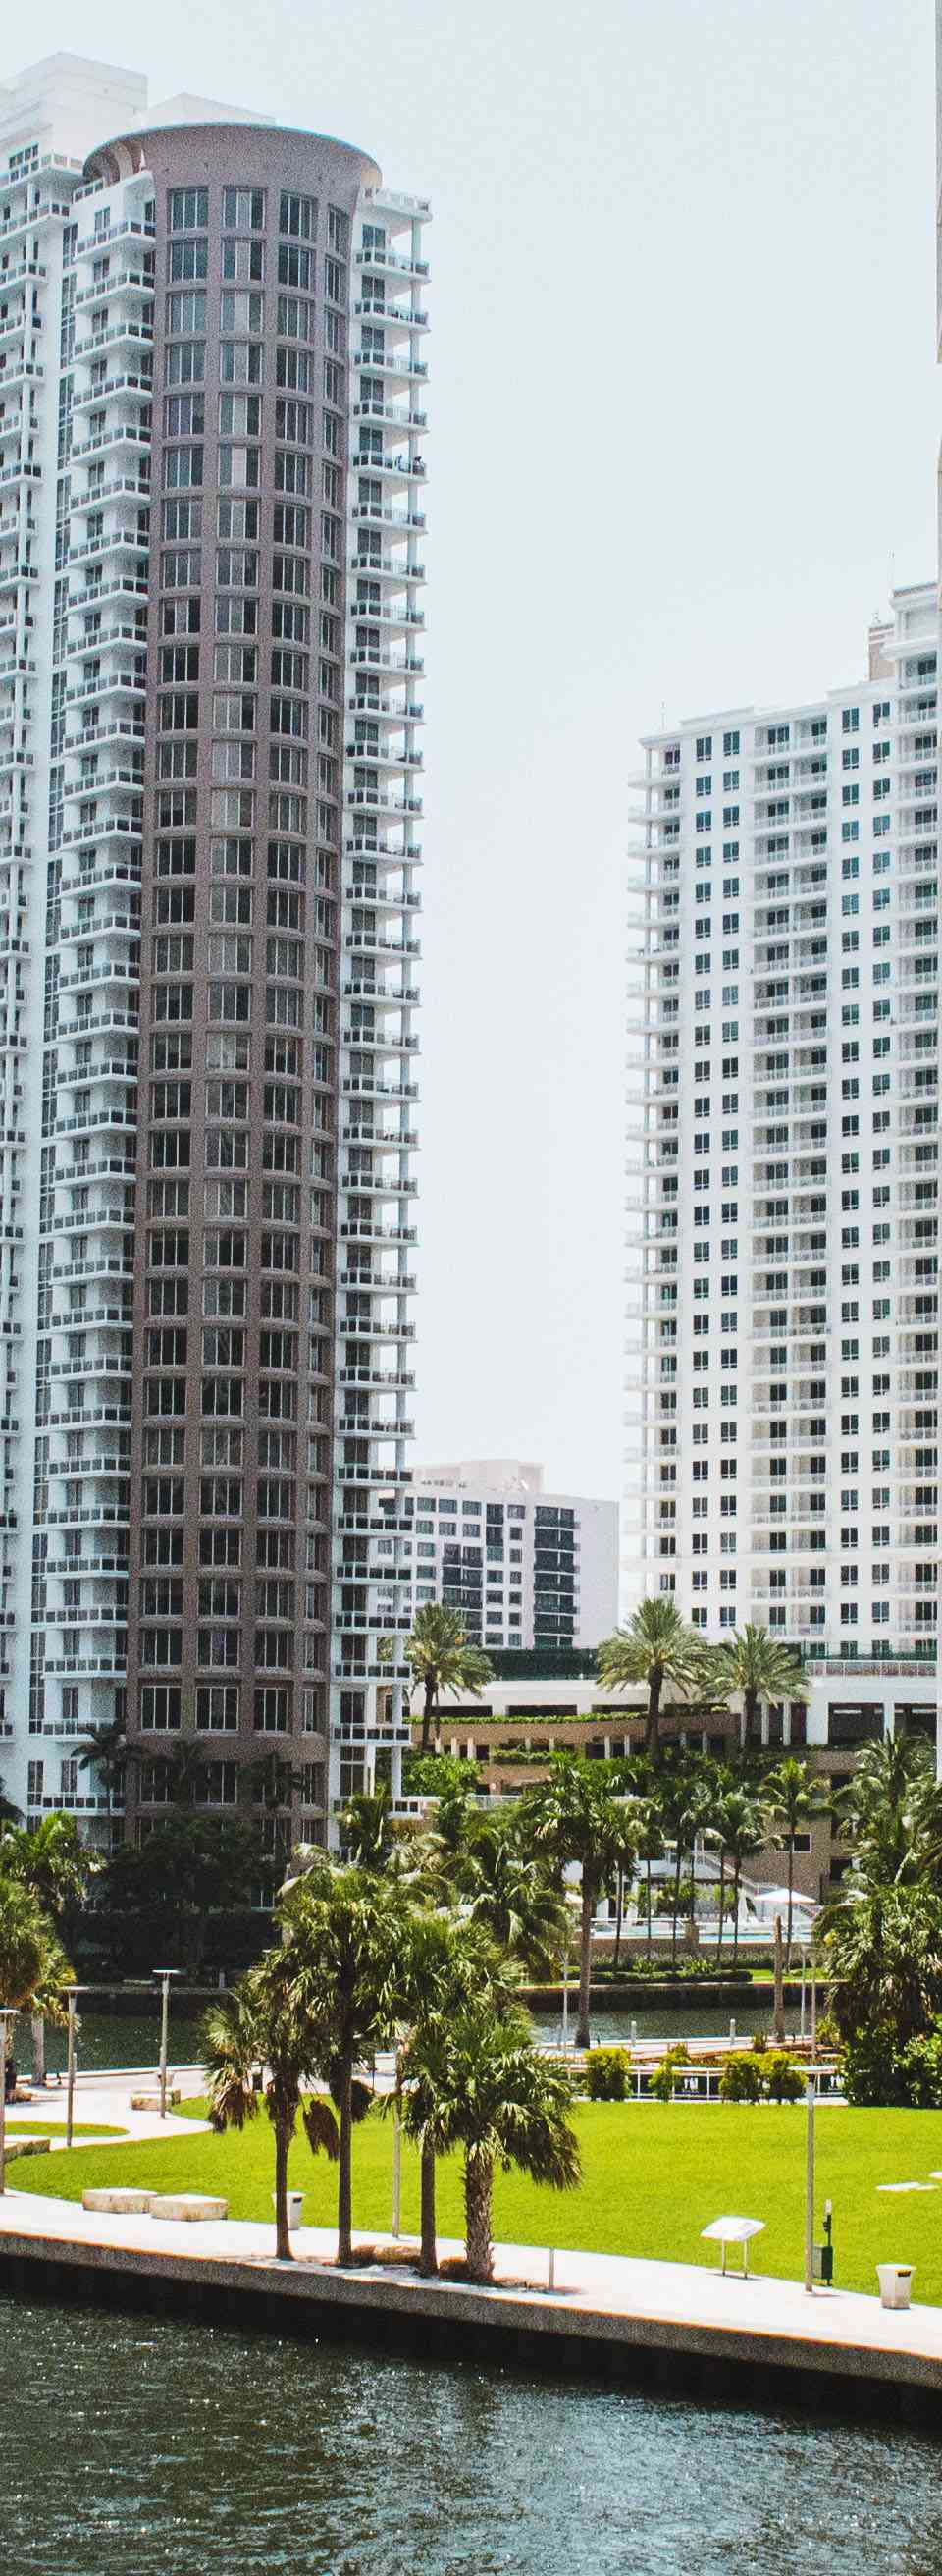 A view of Brickell Skyscrapers on the bay